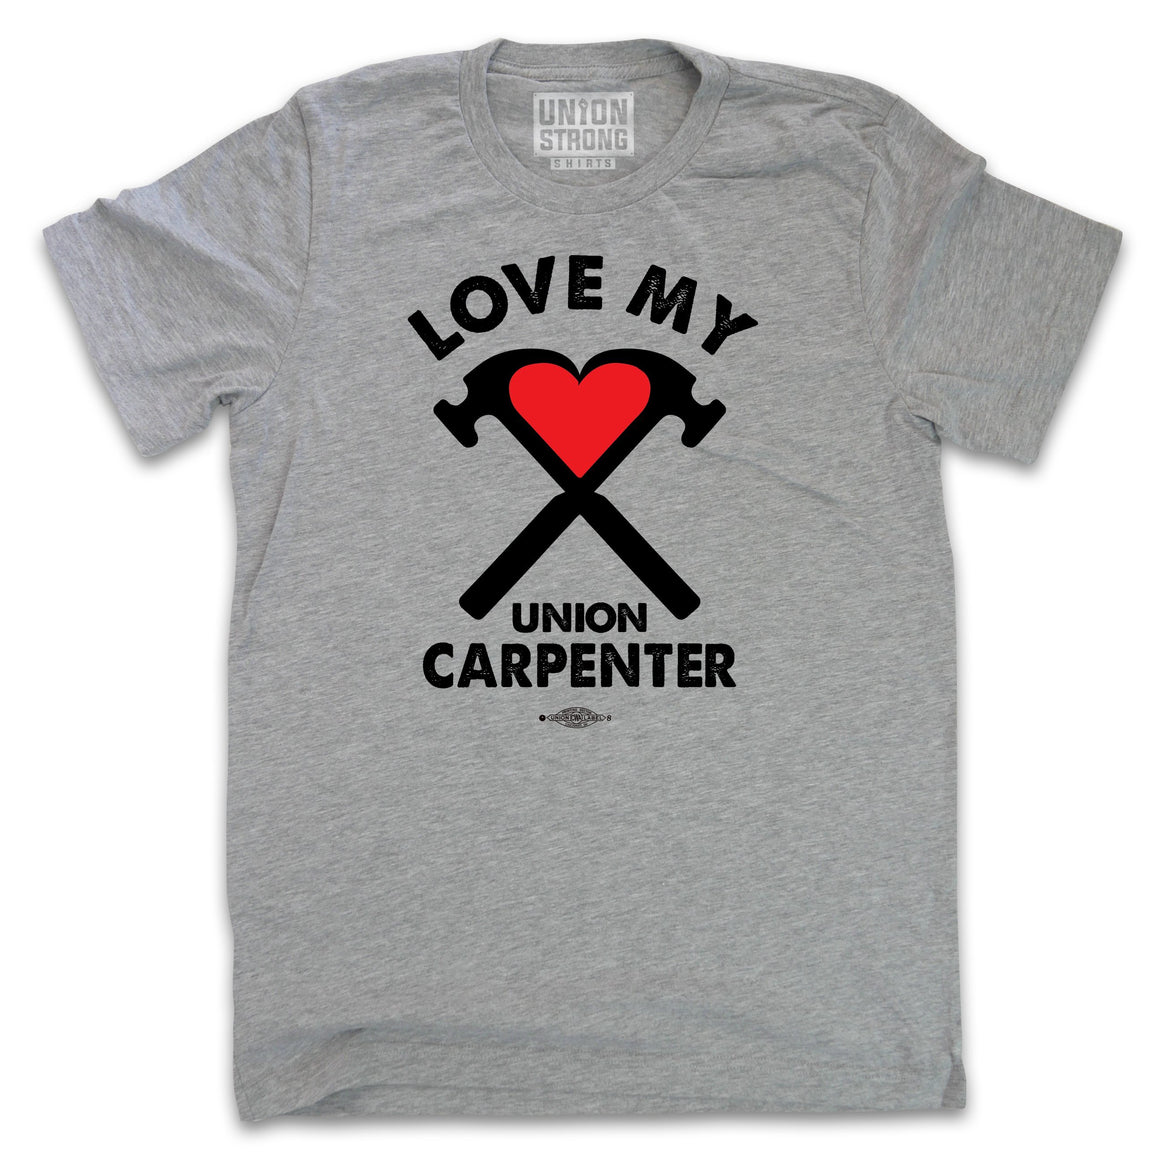 Love My Union Carpenter Shirts unionstrongshirts